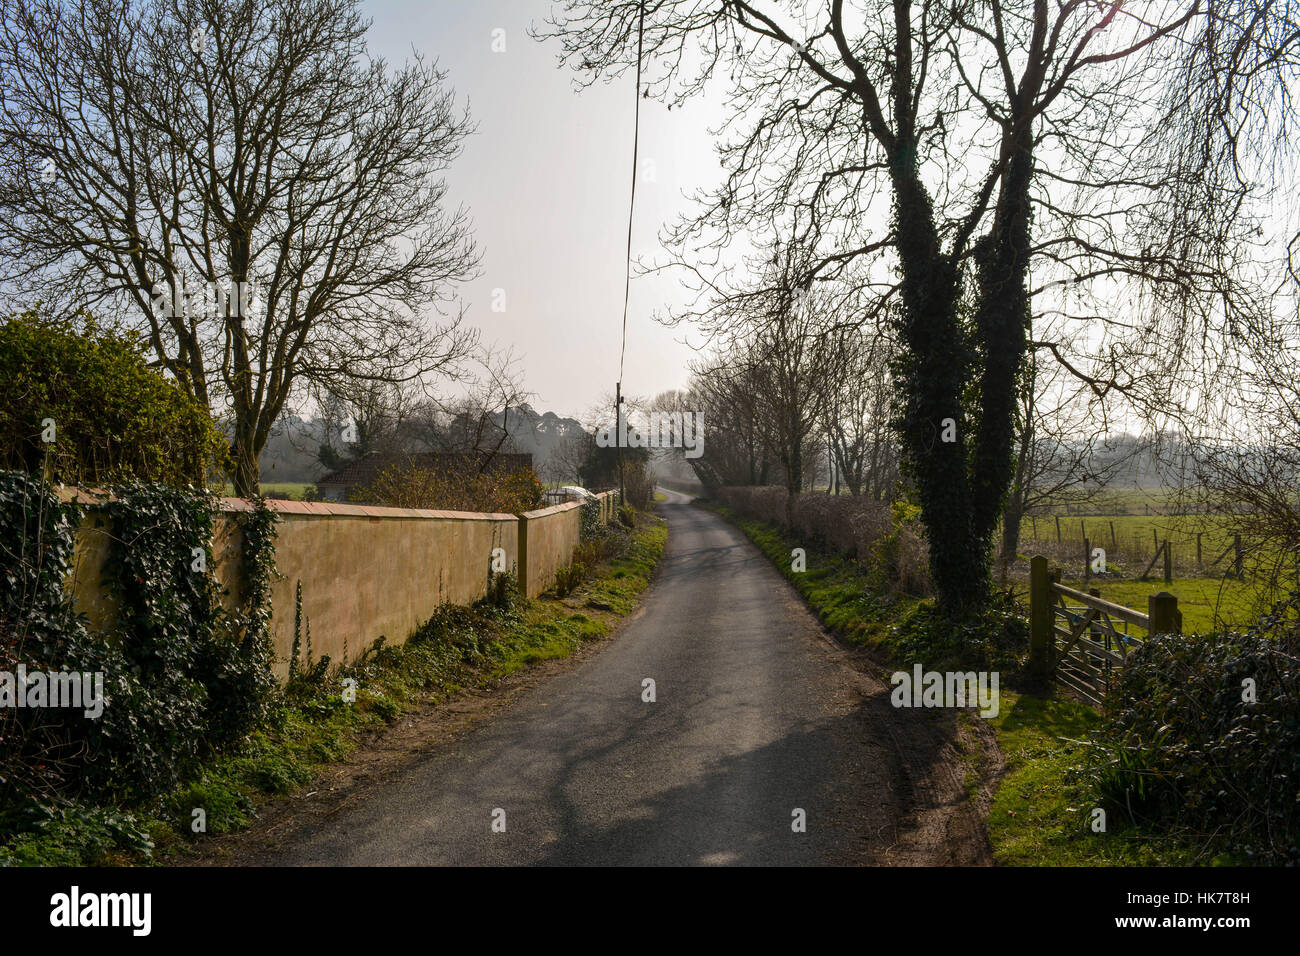 Southhover Lane, opposite the old Tolpuddle Martyrs Tree, West Dorset. Stock Photo